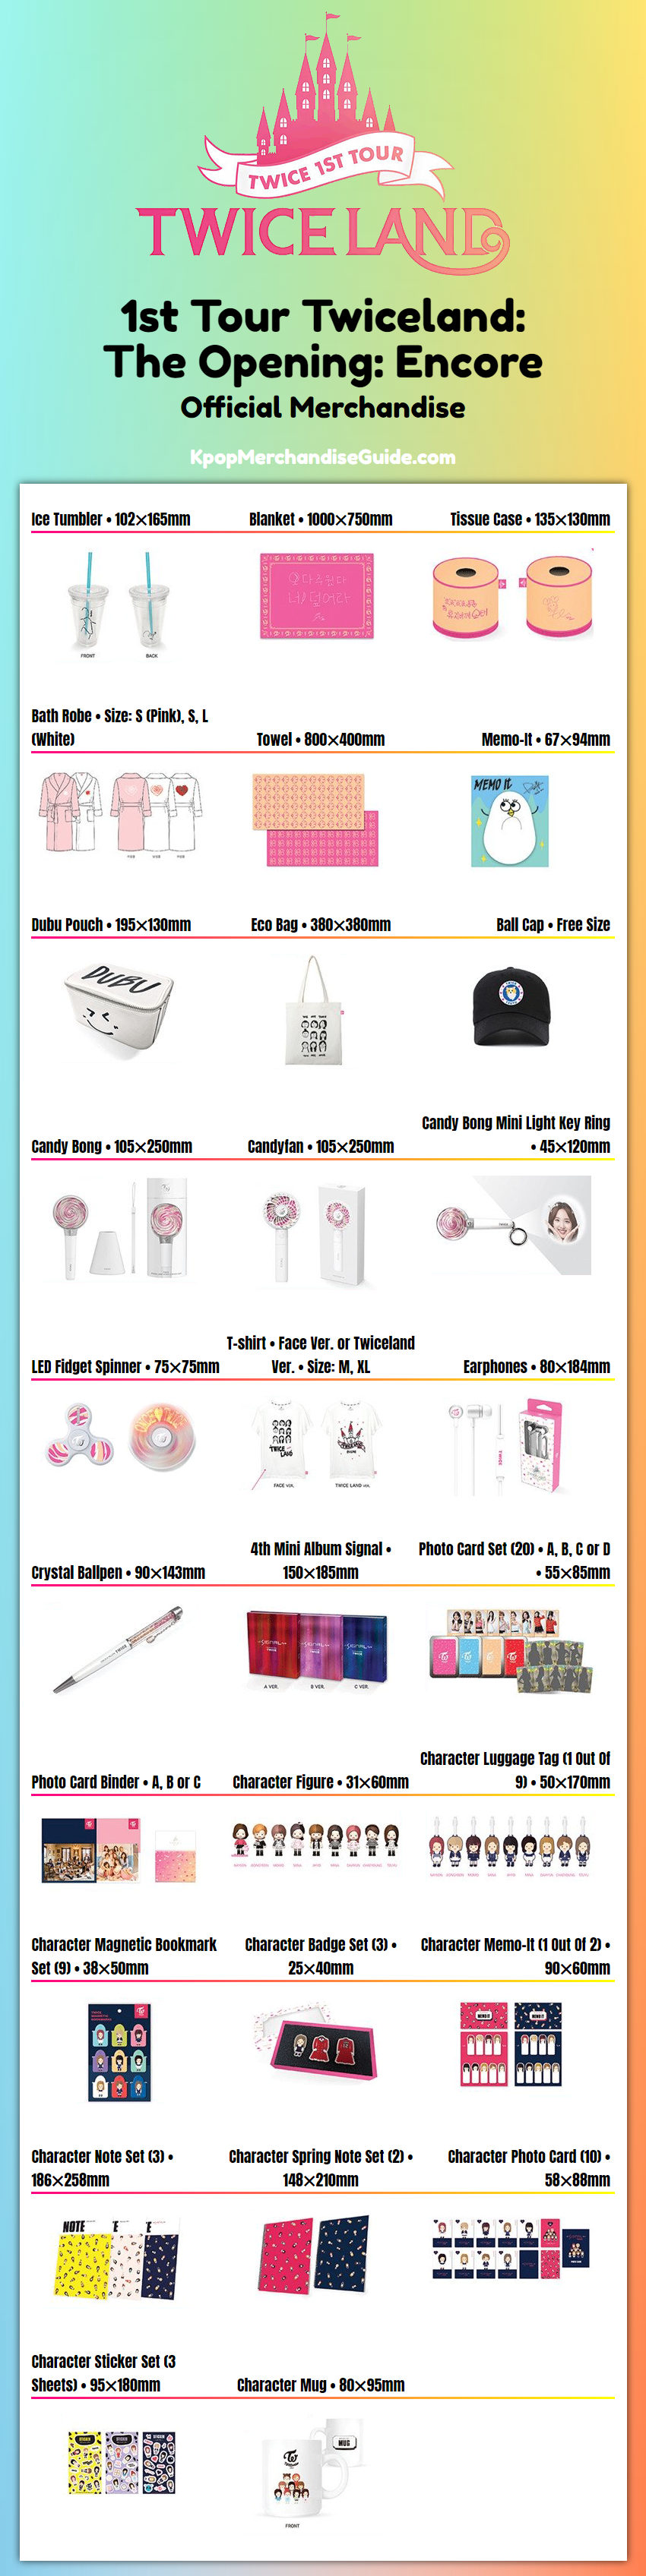 Twice 1st Tour Twiceland: The Opening Encore Merchandise